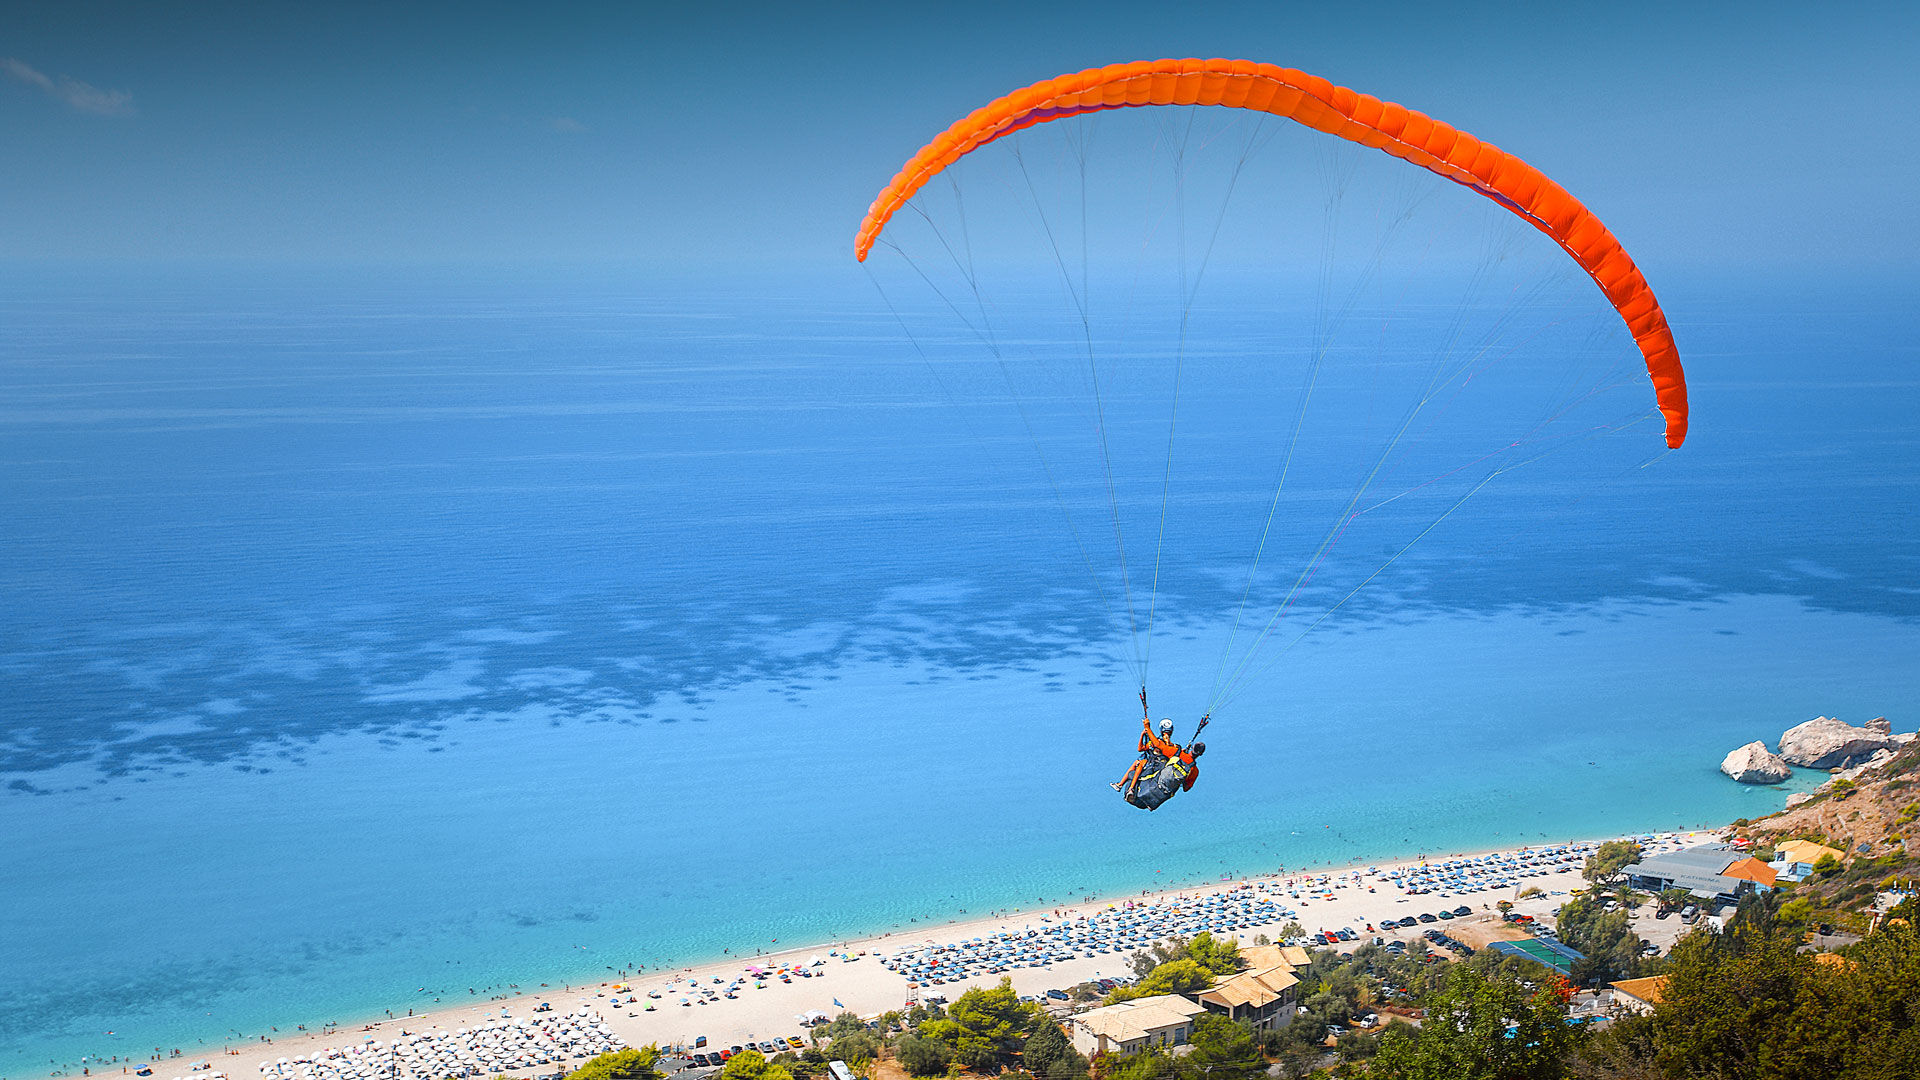 The sight of the paragliders, who launch from the green mountain backdrop and arc overhead before settling on the beach